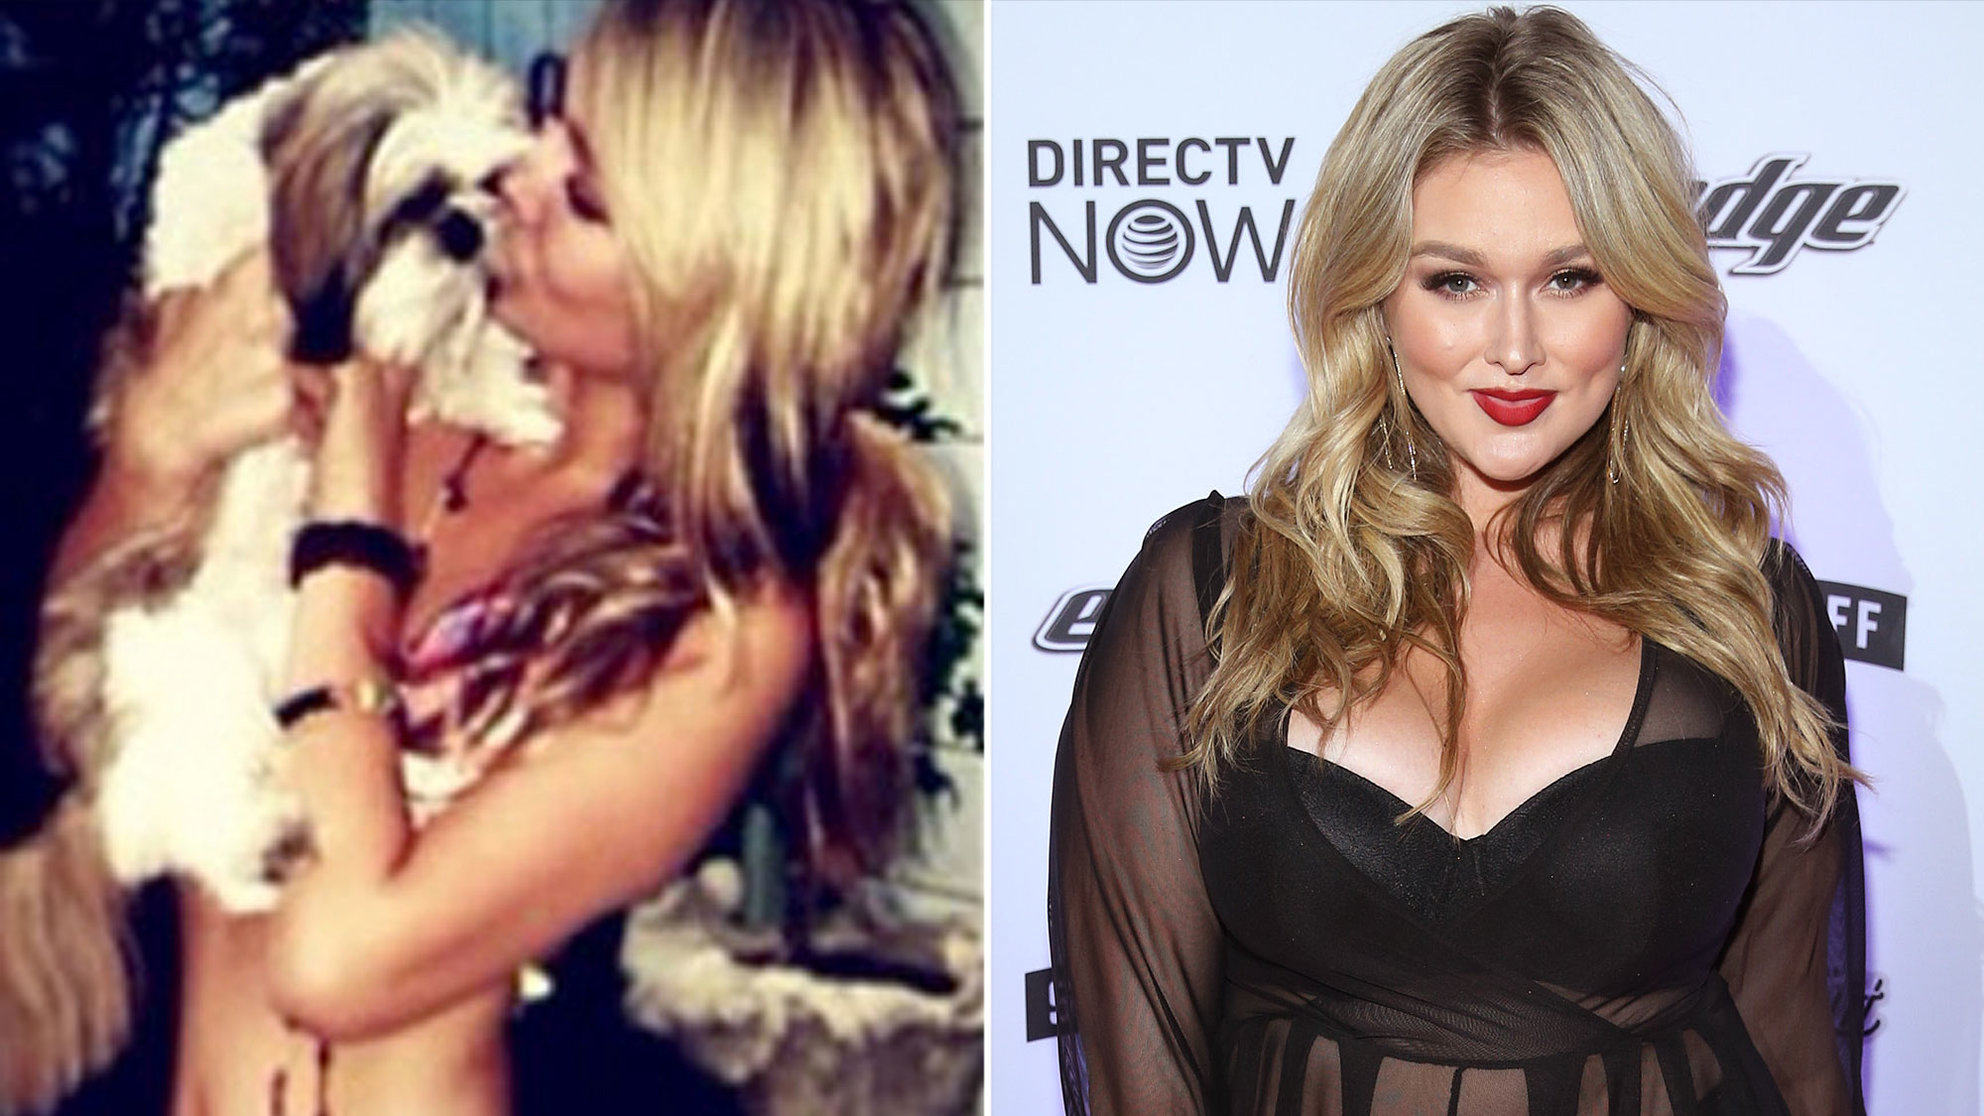 From a Size 2 to Sports Illustrated Swim's Curviest Model Ever: Hunter McGrady Is 'Much Happier' at a Size 16